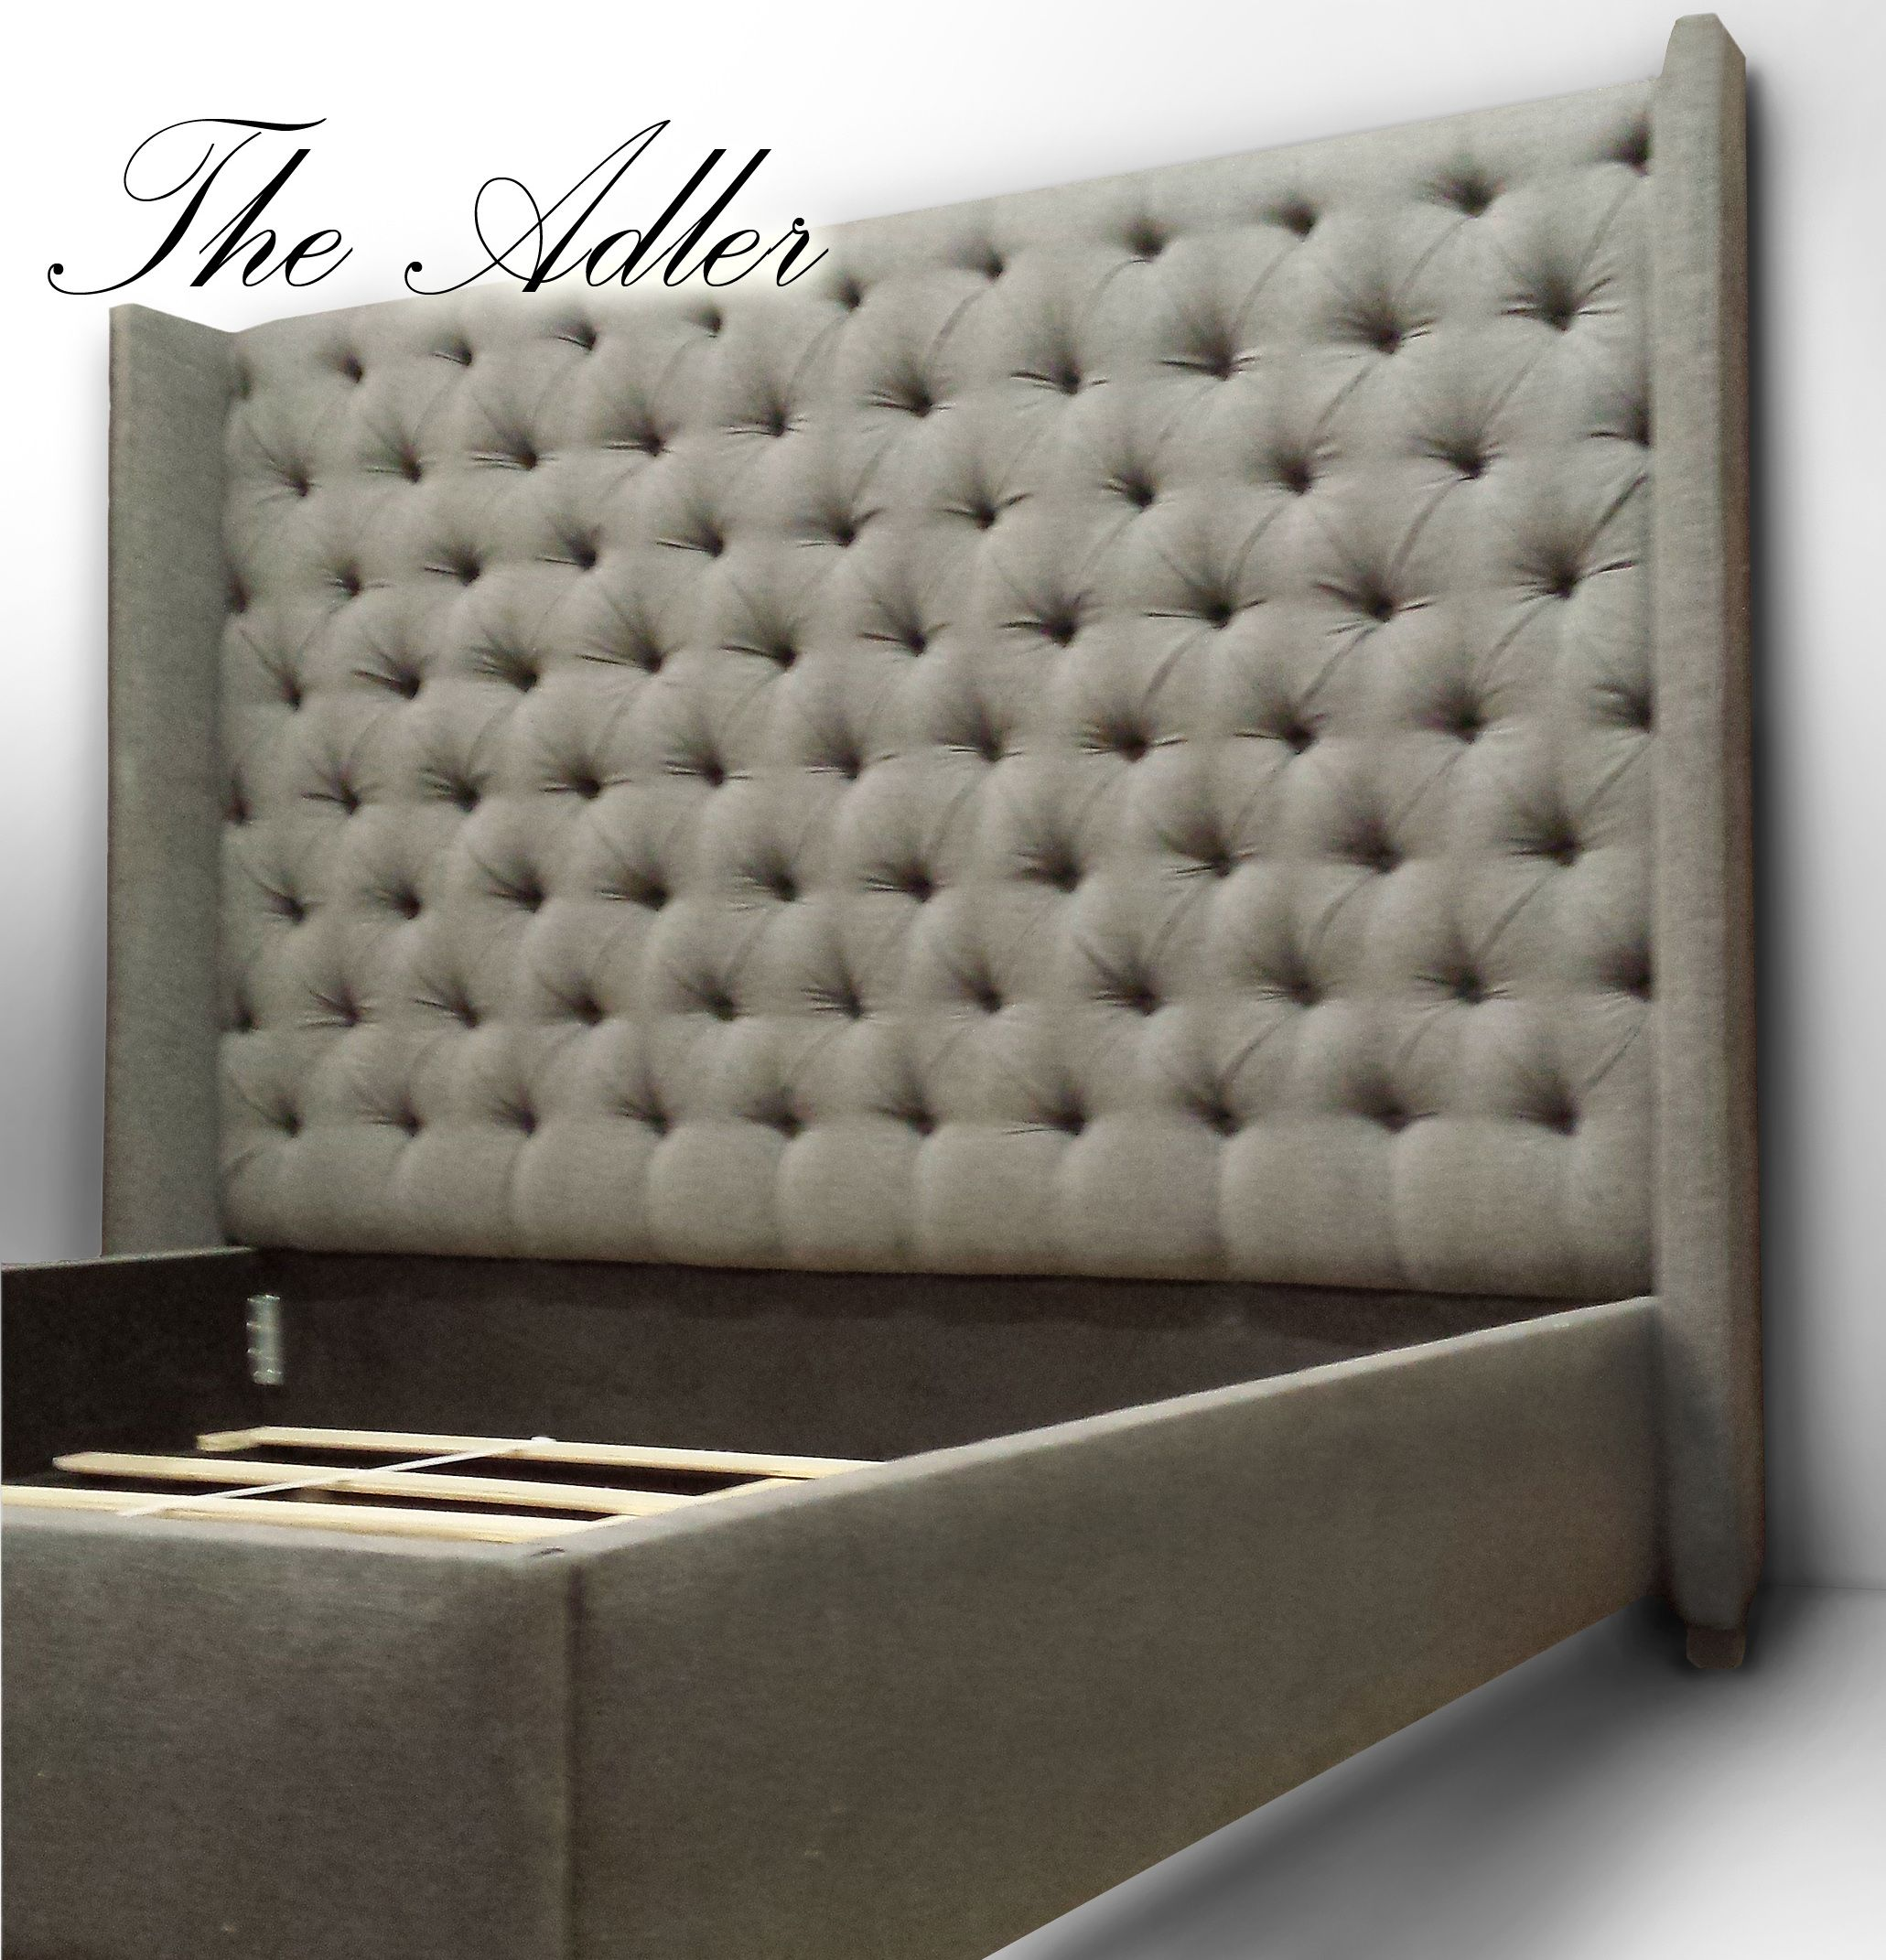 Great Prices On Custom Made Tall Tufted Beds And Headboards Any Size Shape And Fabric Fall